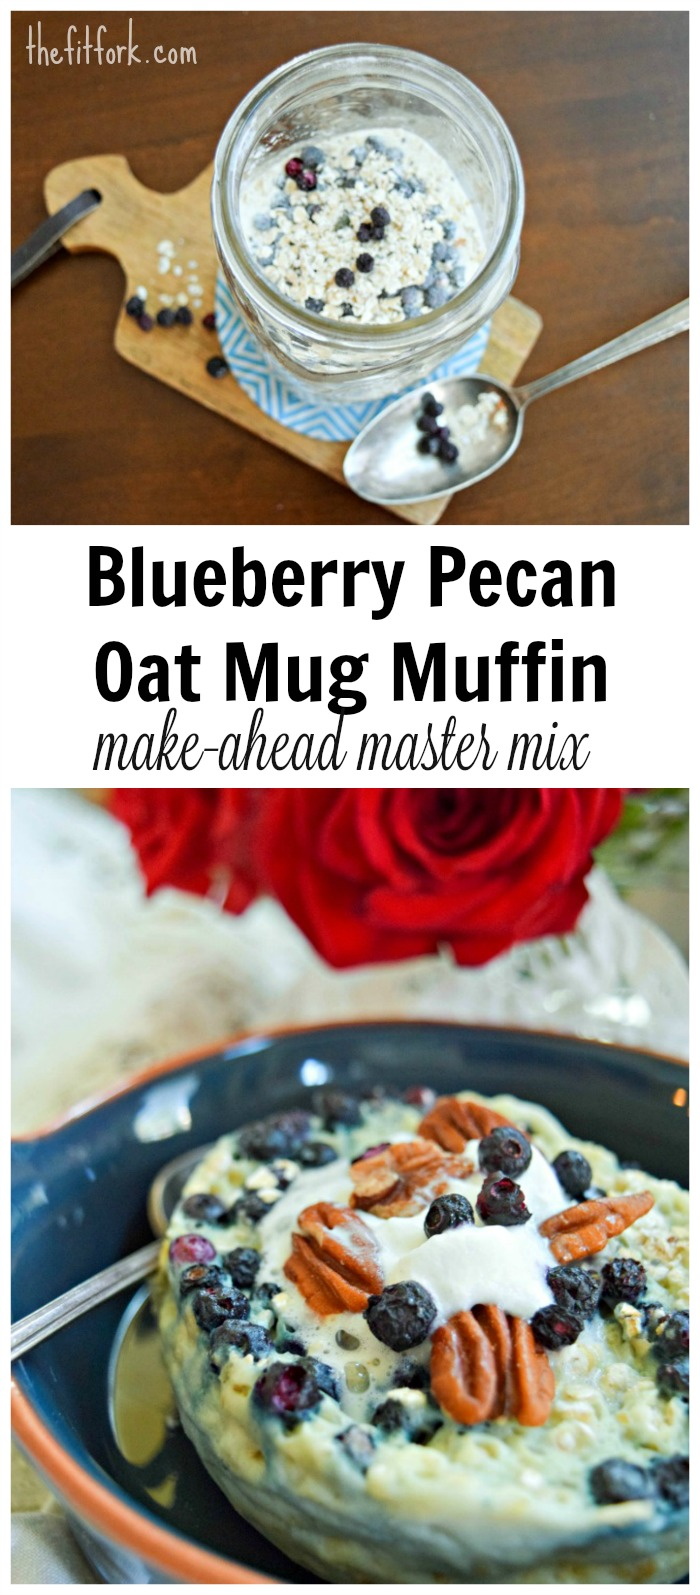 Blueberry Pecan Oat Protein Mug Muffin -- food prep the master mix and have breakfast read in less than 2 minutes.